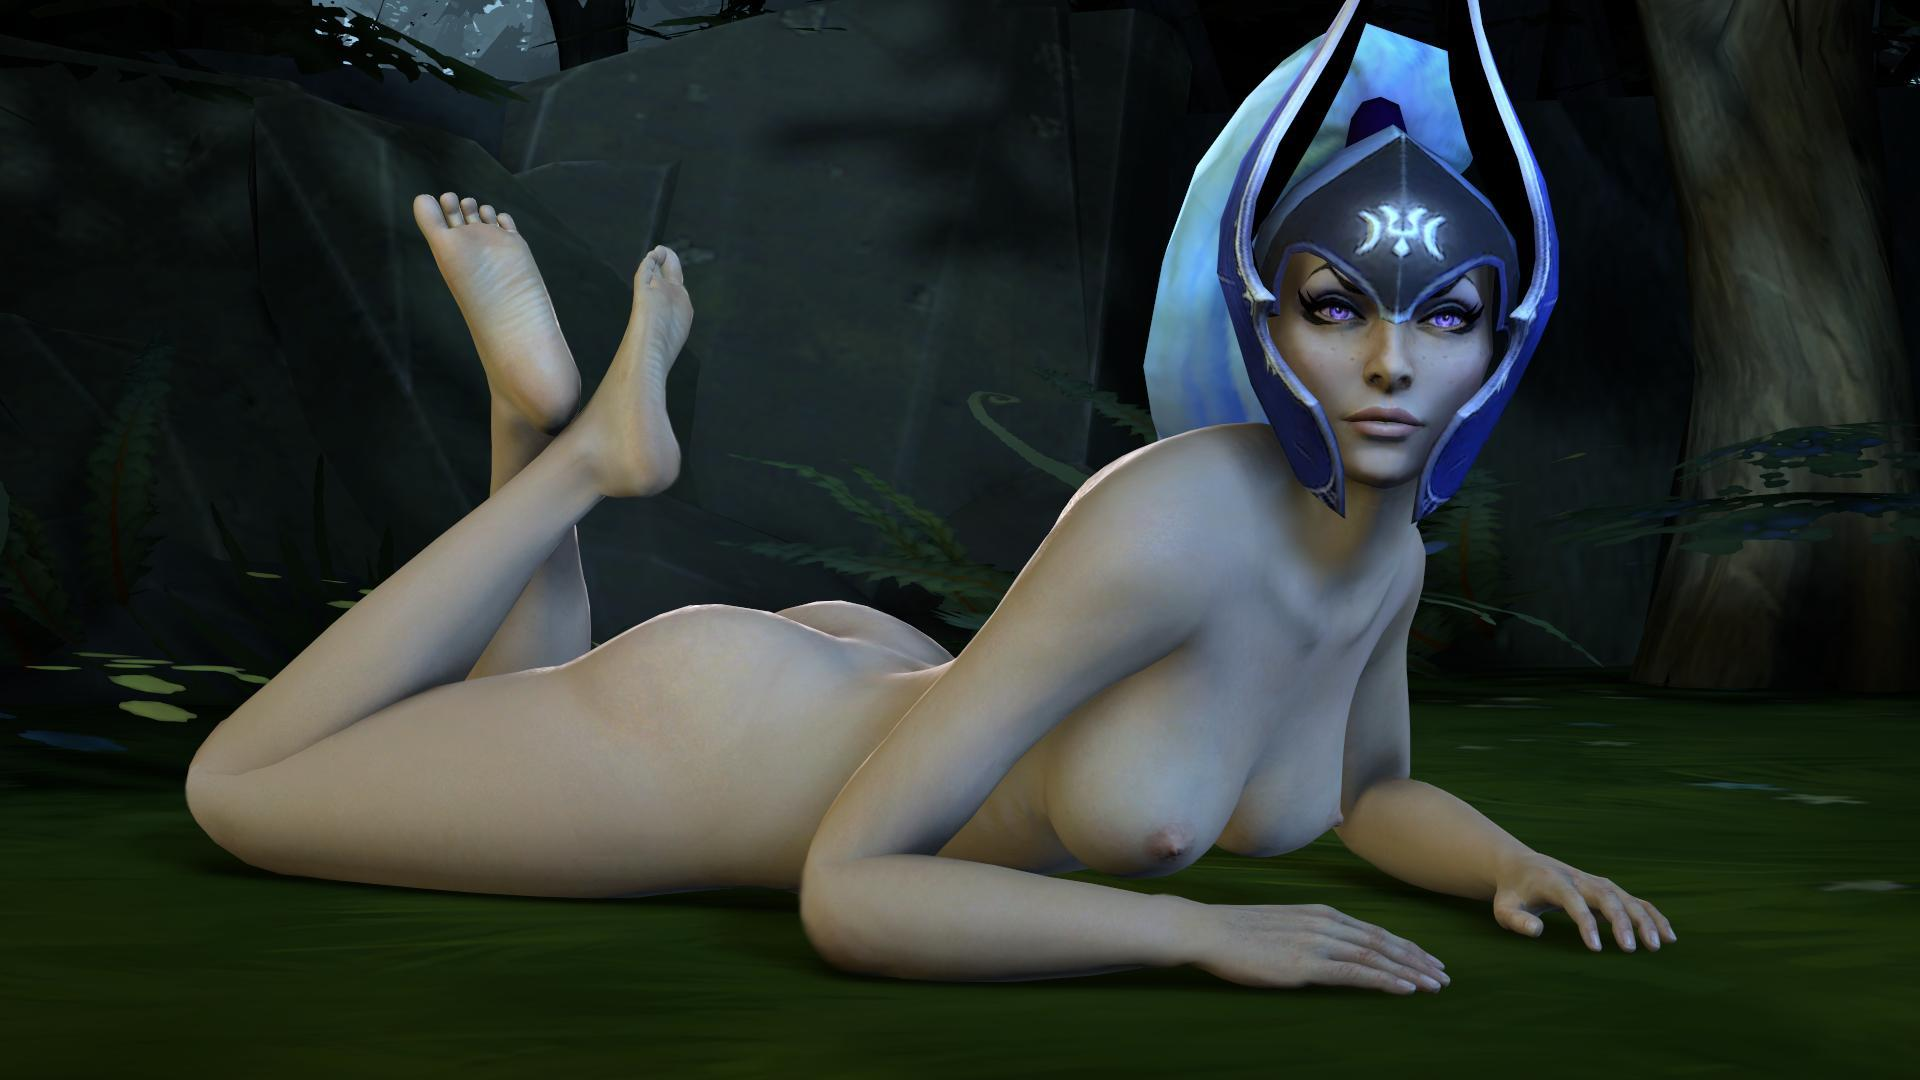 Nude mod for dota hentai video